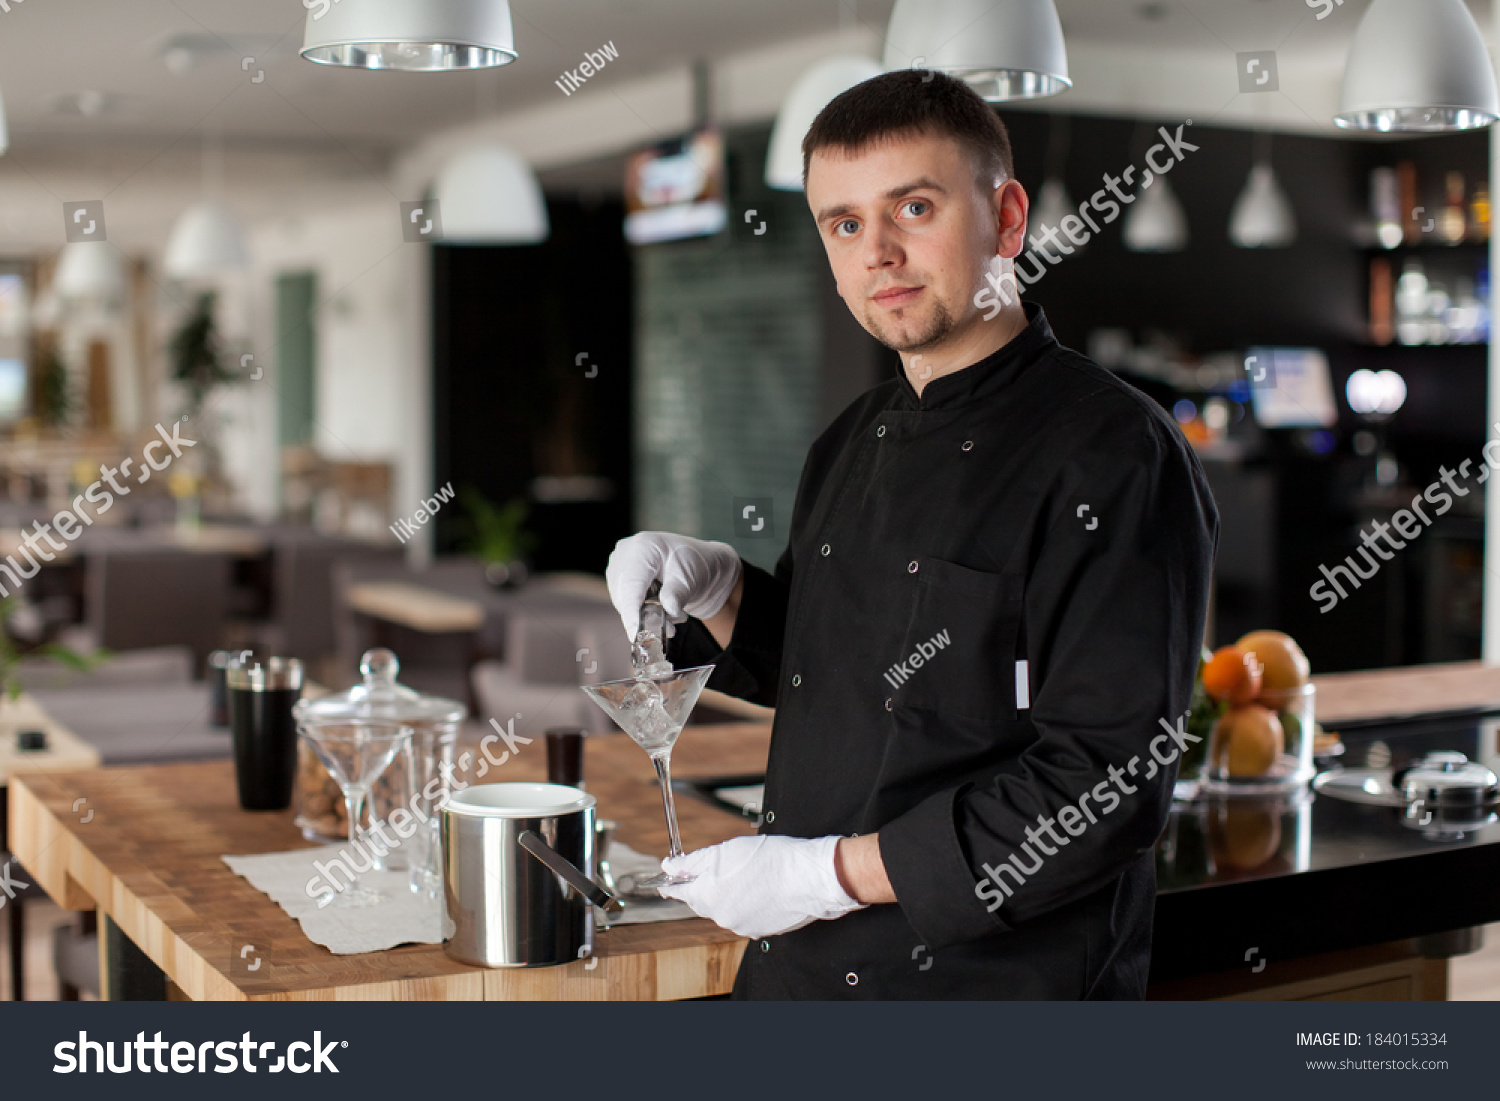 bartender deutsch